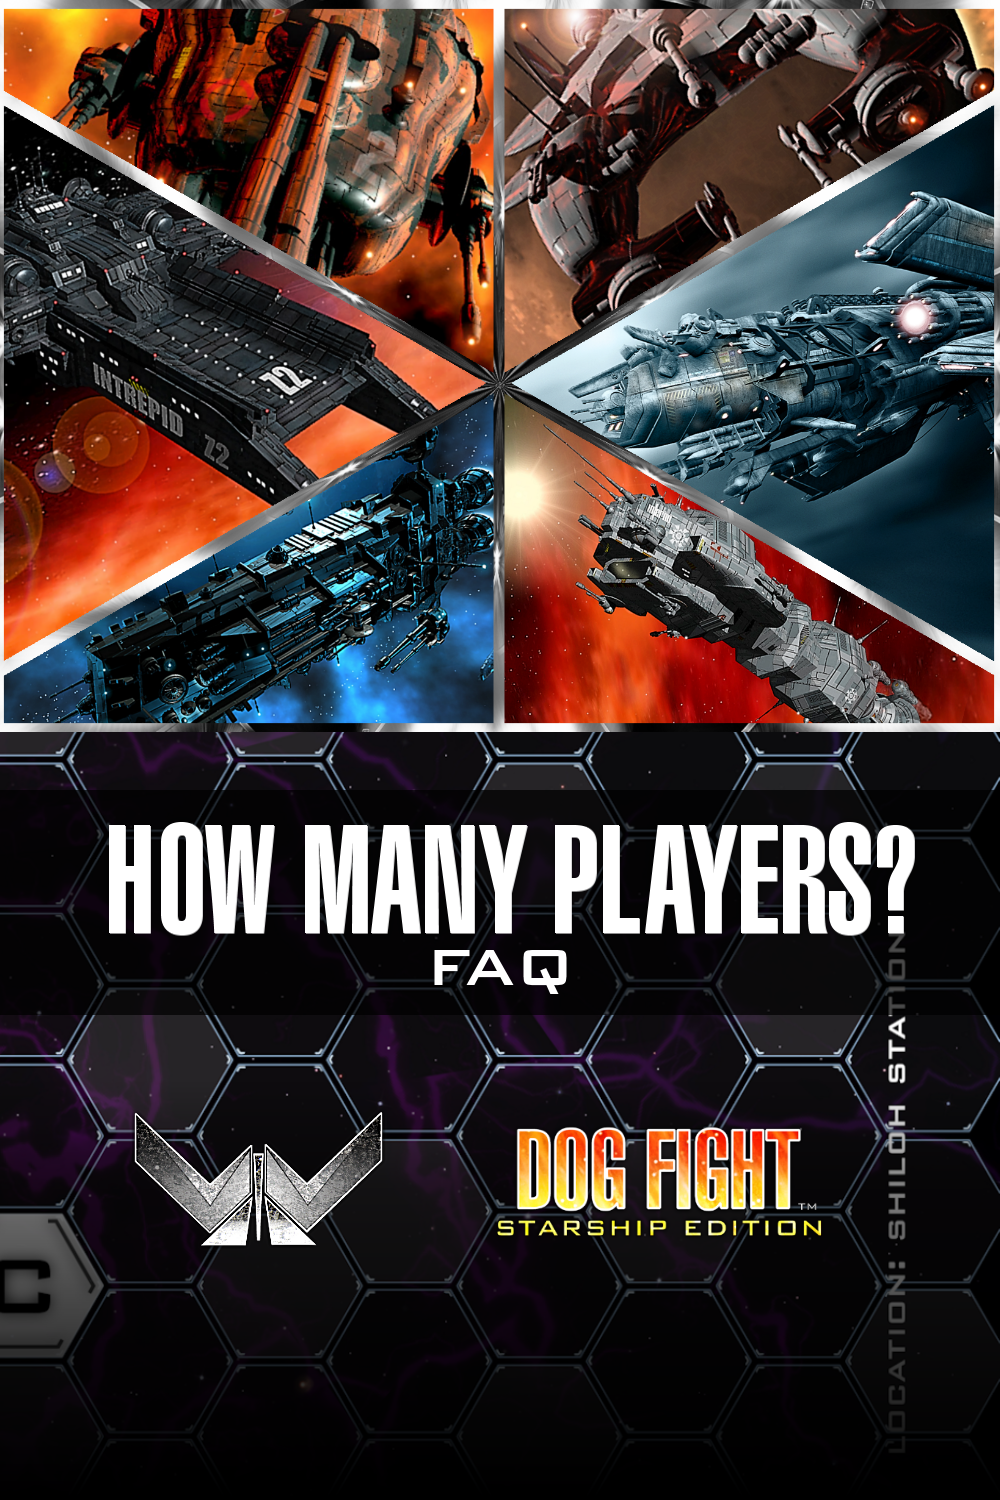 Dog Fight: Starship Edition how many players?